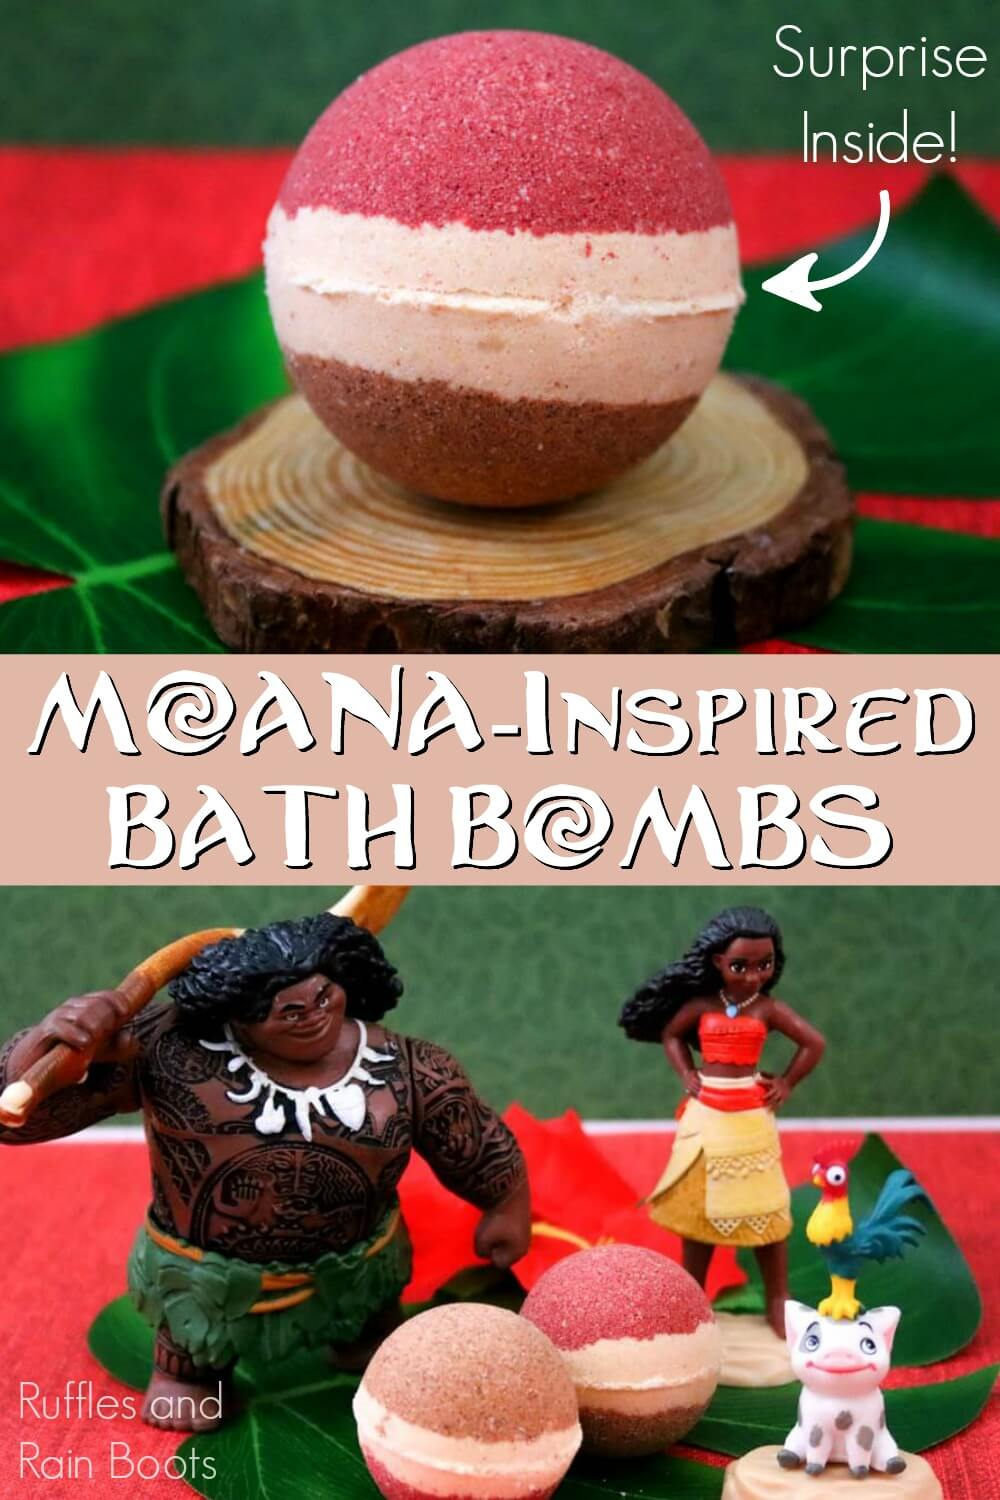 surprise moana bath bombs gifts for disney kids photo collage with text which reads moana inspired bath bombs